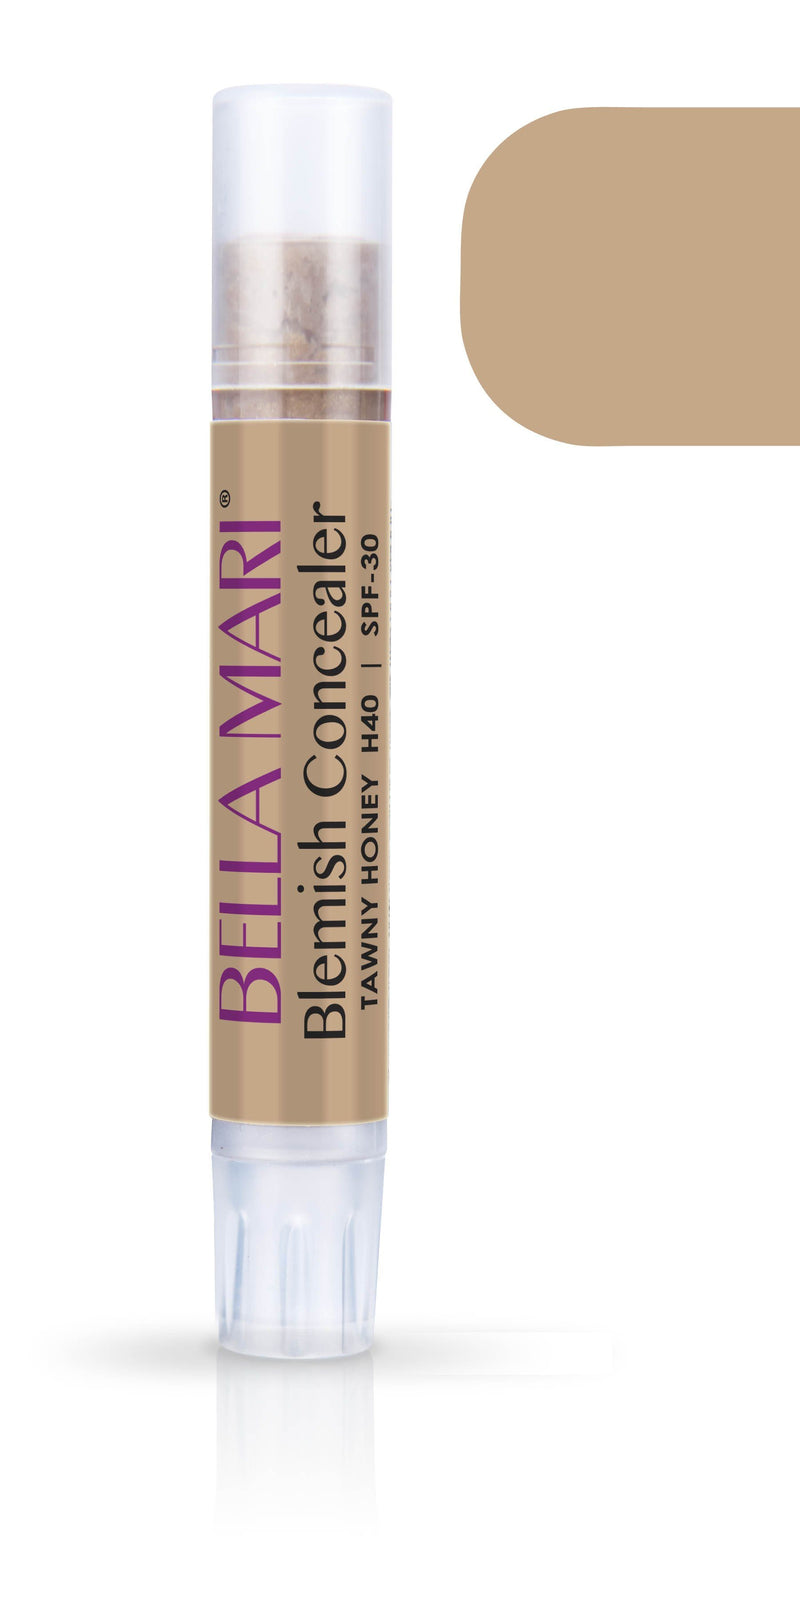 Bella Mari Natural Blemish Concealer Stick; 0.1floz - Bella Mari Natural Blemish Concealer Stick; 0.1floz - Tawny Honey